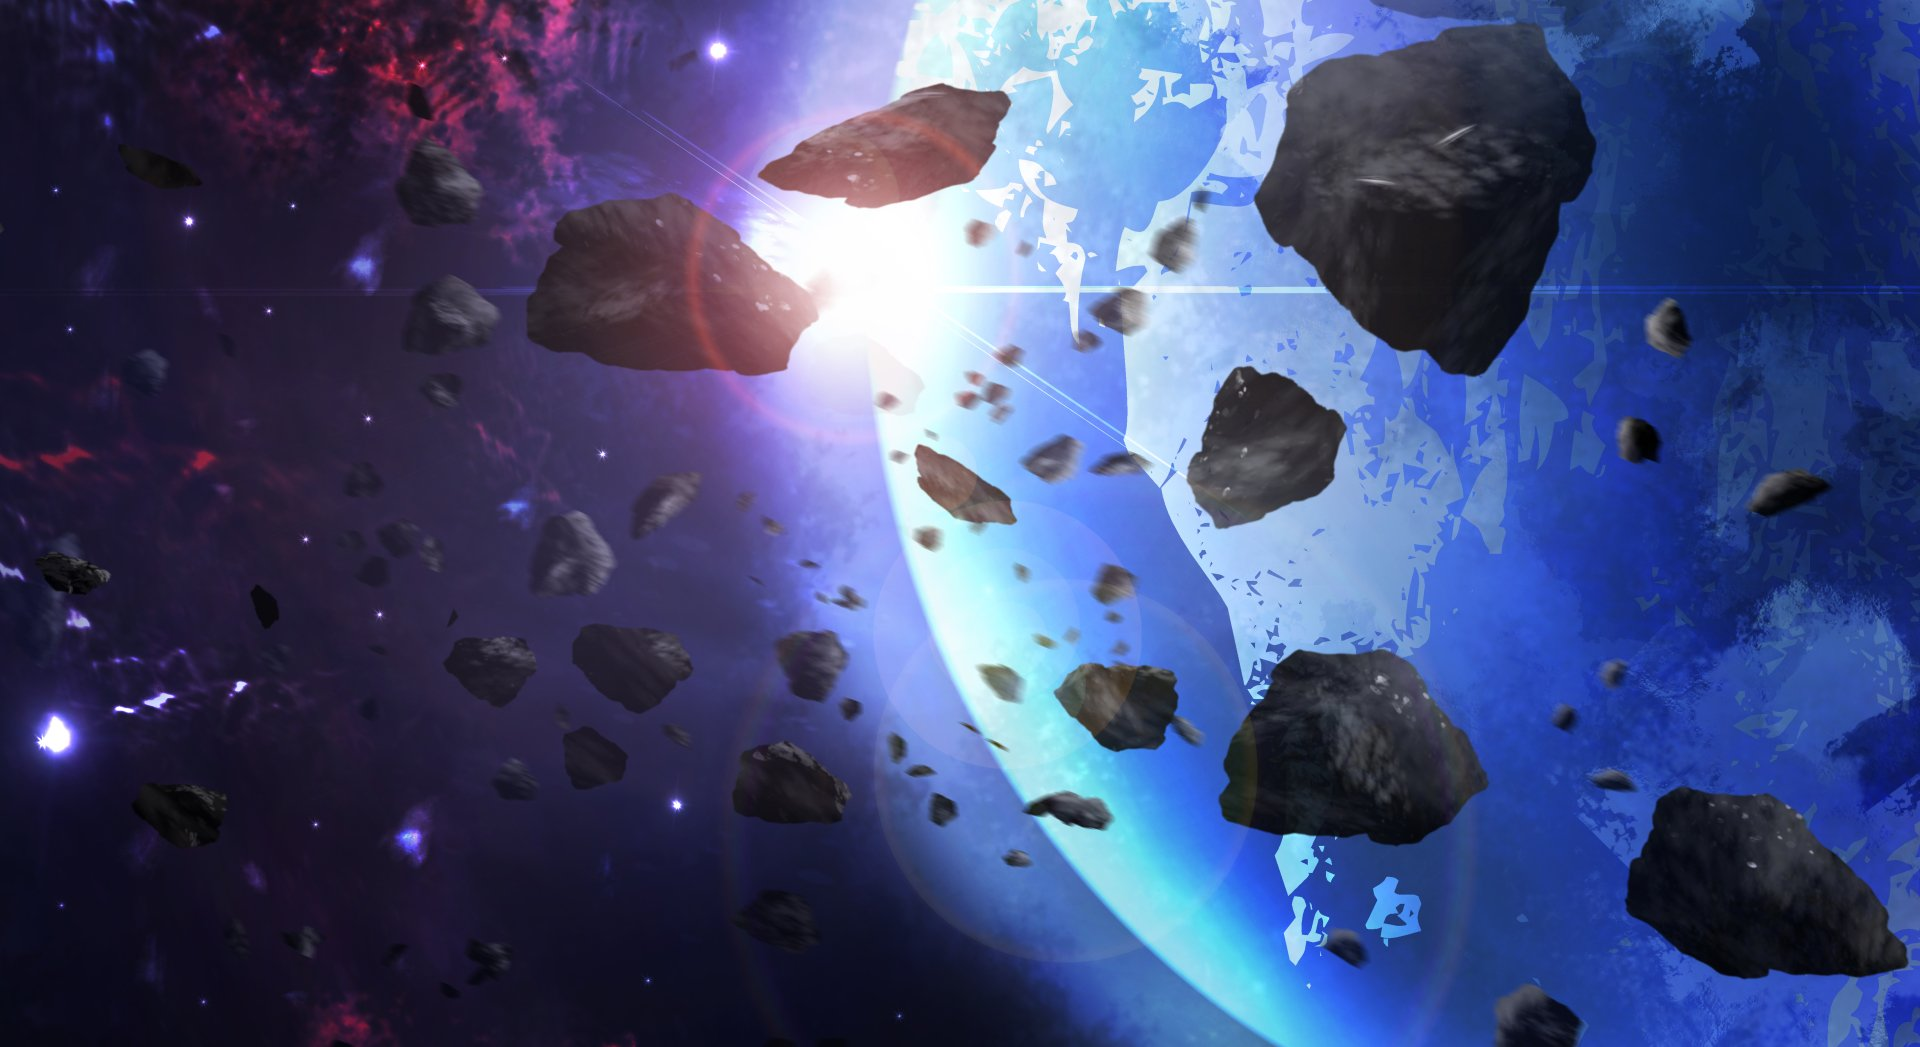 Artistic - Space  Asteroid Earth Artistic Wallpaper